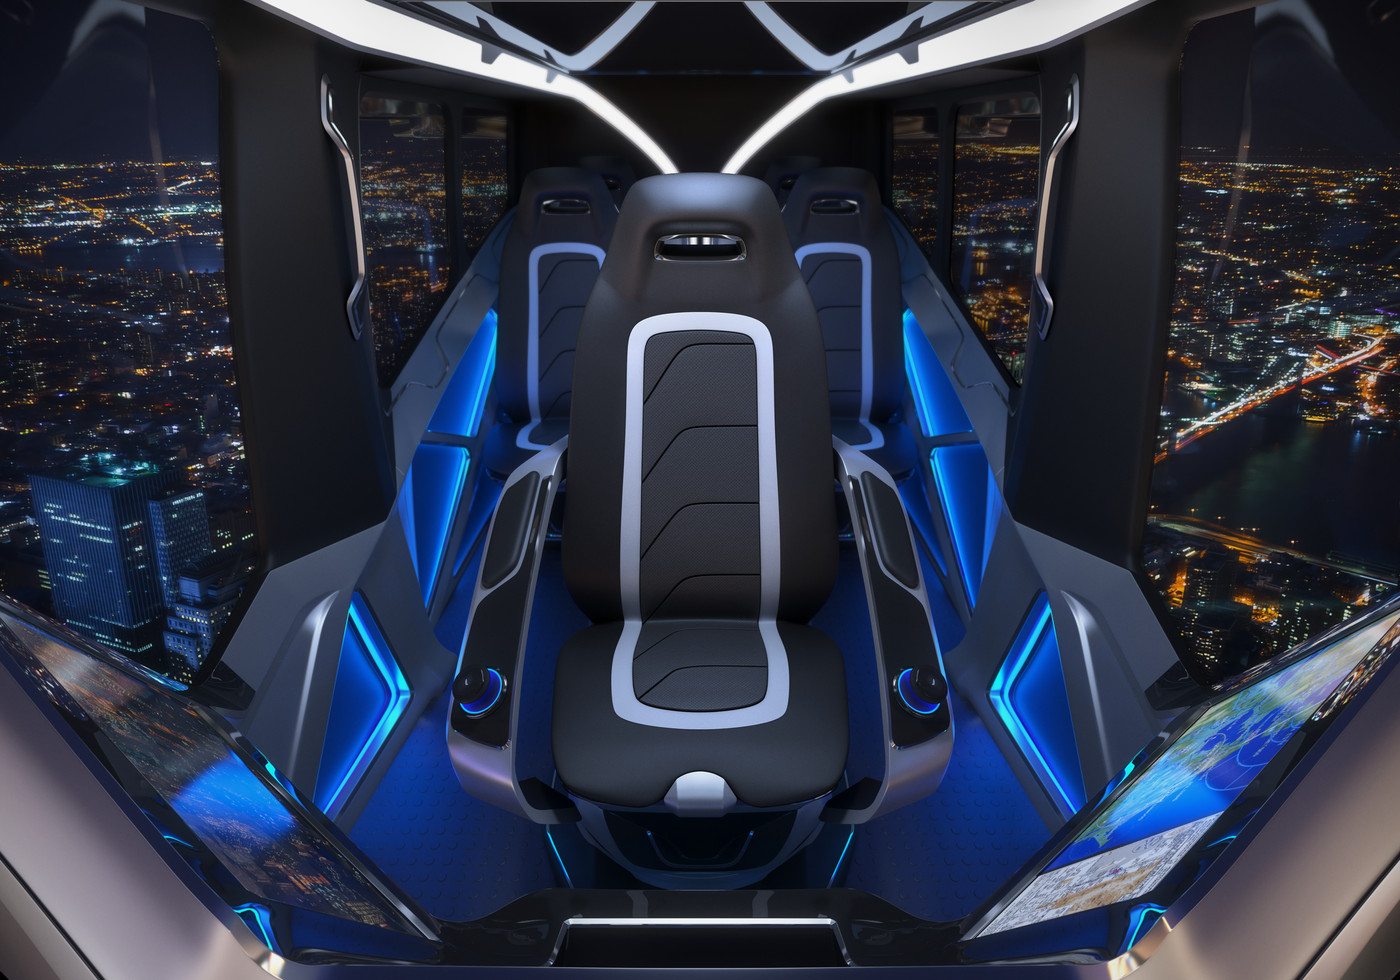 bell's hybrid-electric flying car will be available via uberthe